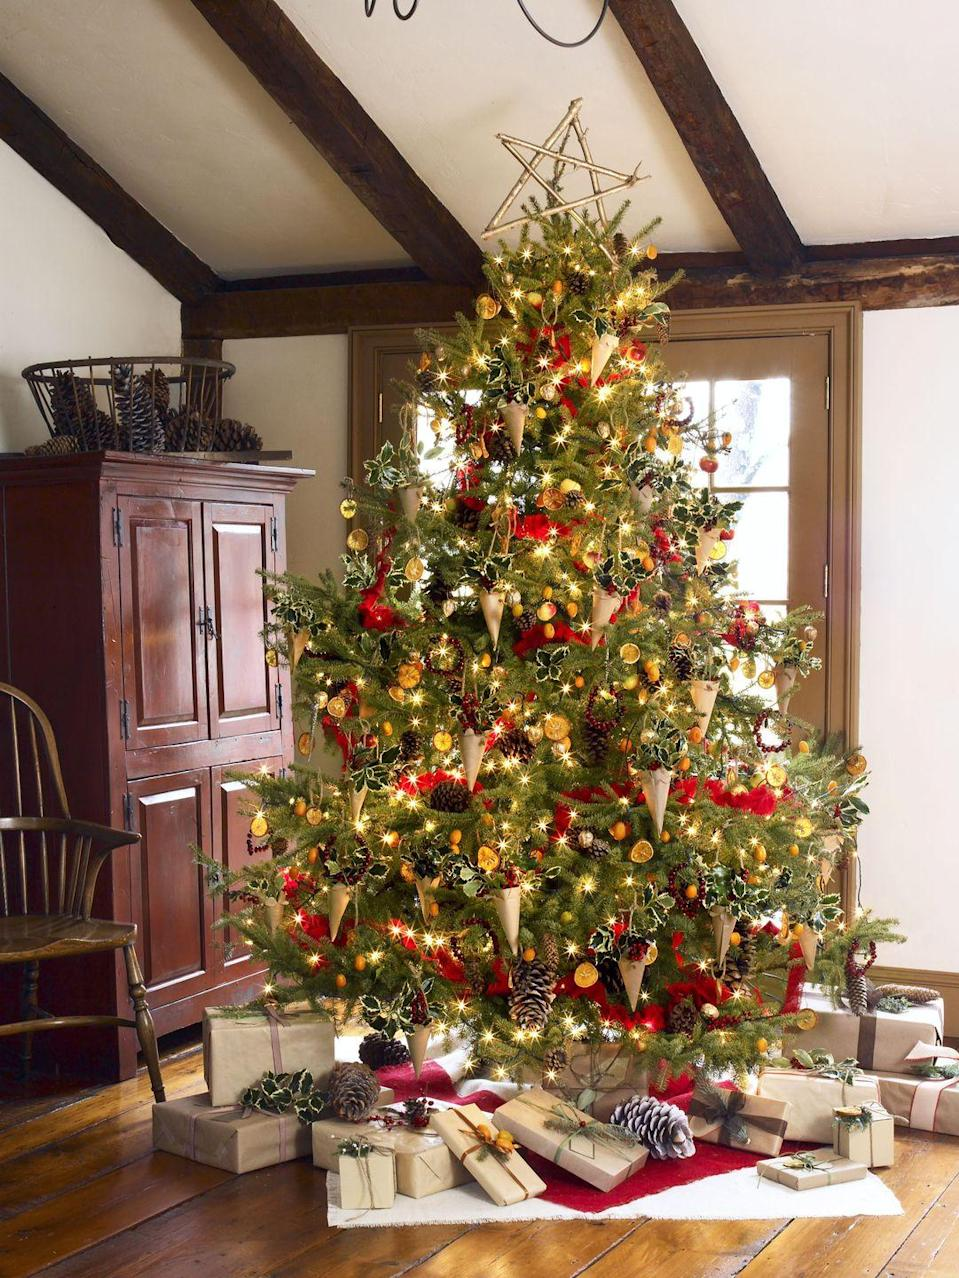 <p>Crowned with a twig star and wrapped with a garland of red burlap, this towering tree packs in the DIY treats: dried orange slices, walnuts gilded with gold paint, mini cranberry wreaths, and more.</p>